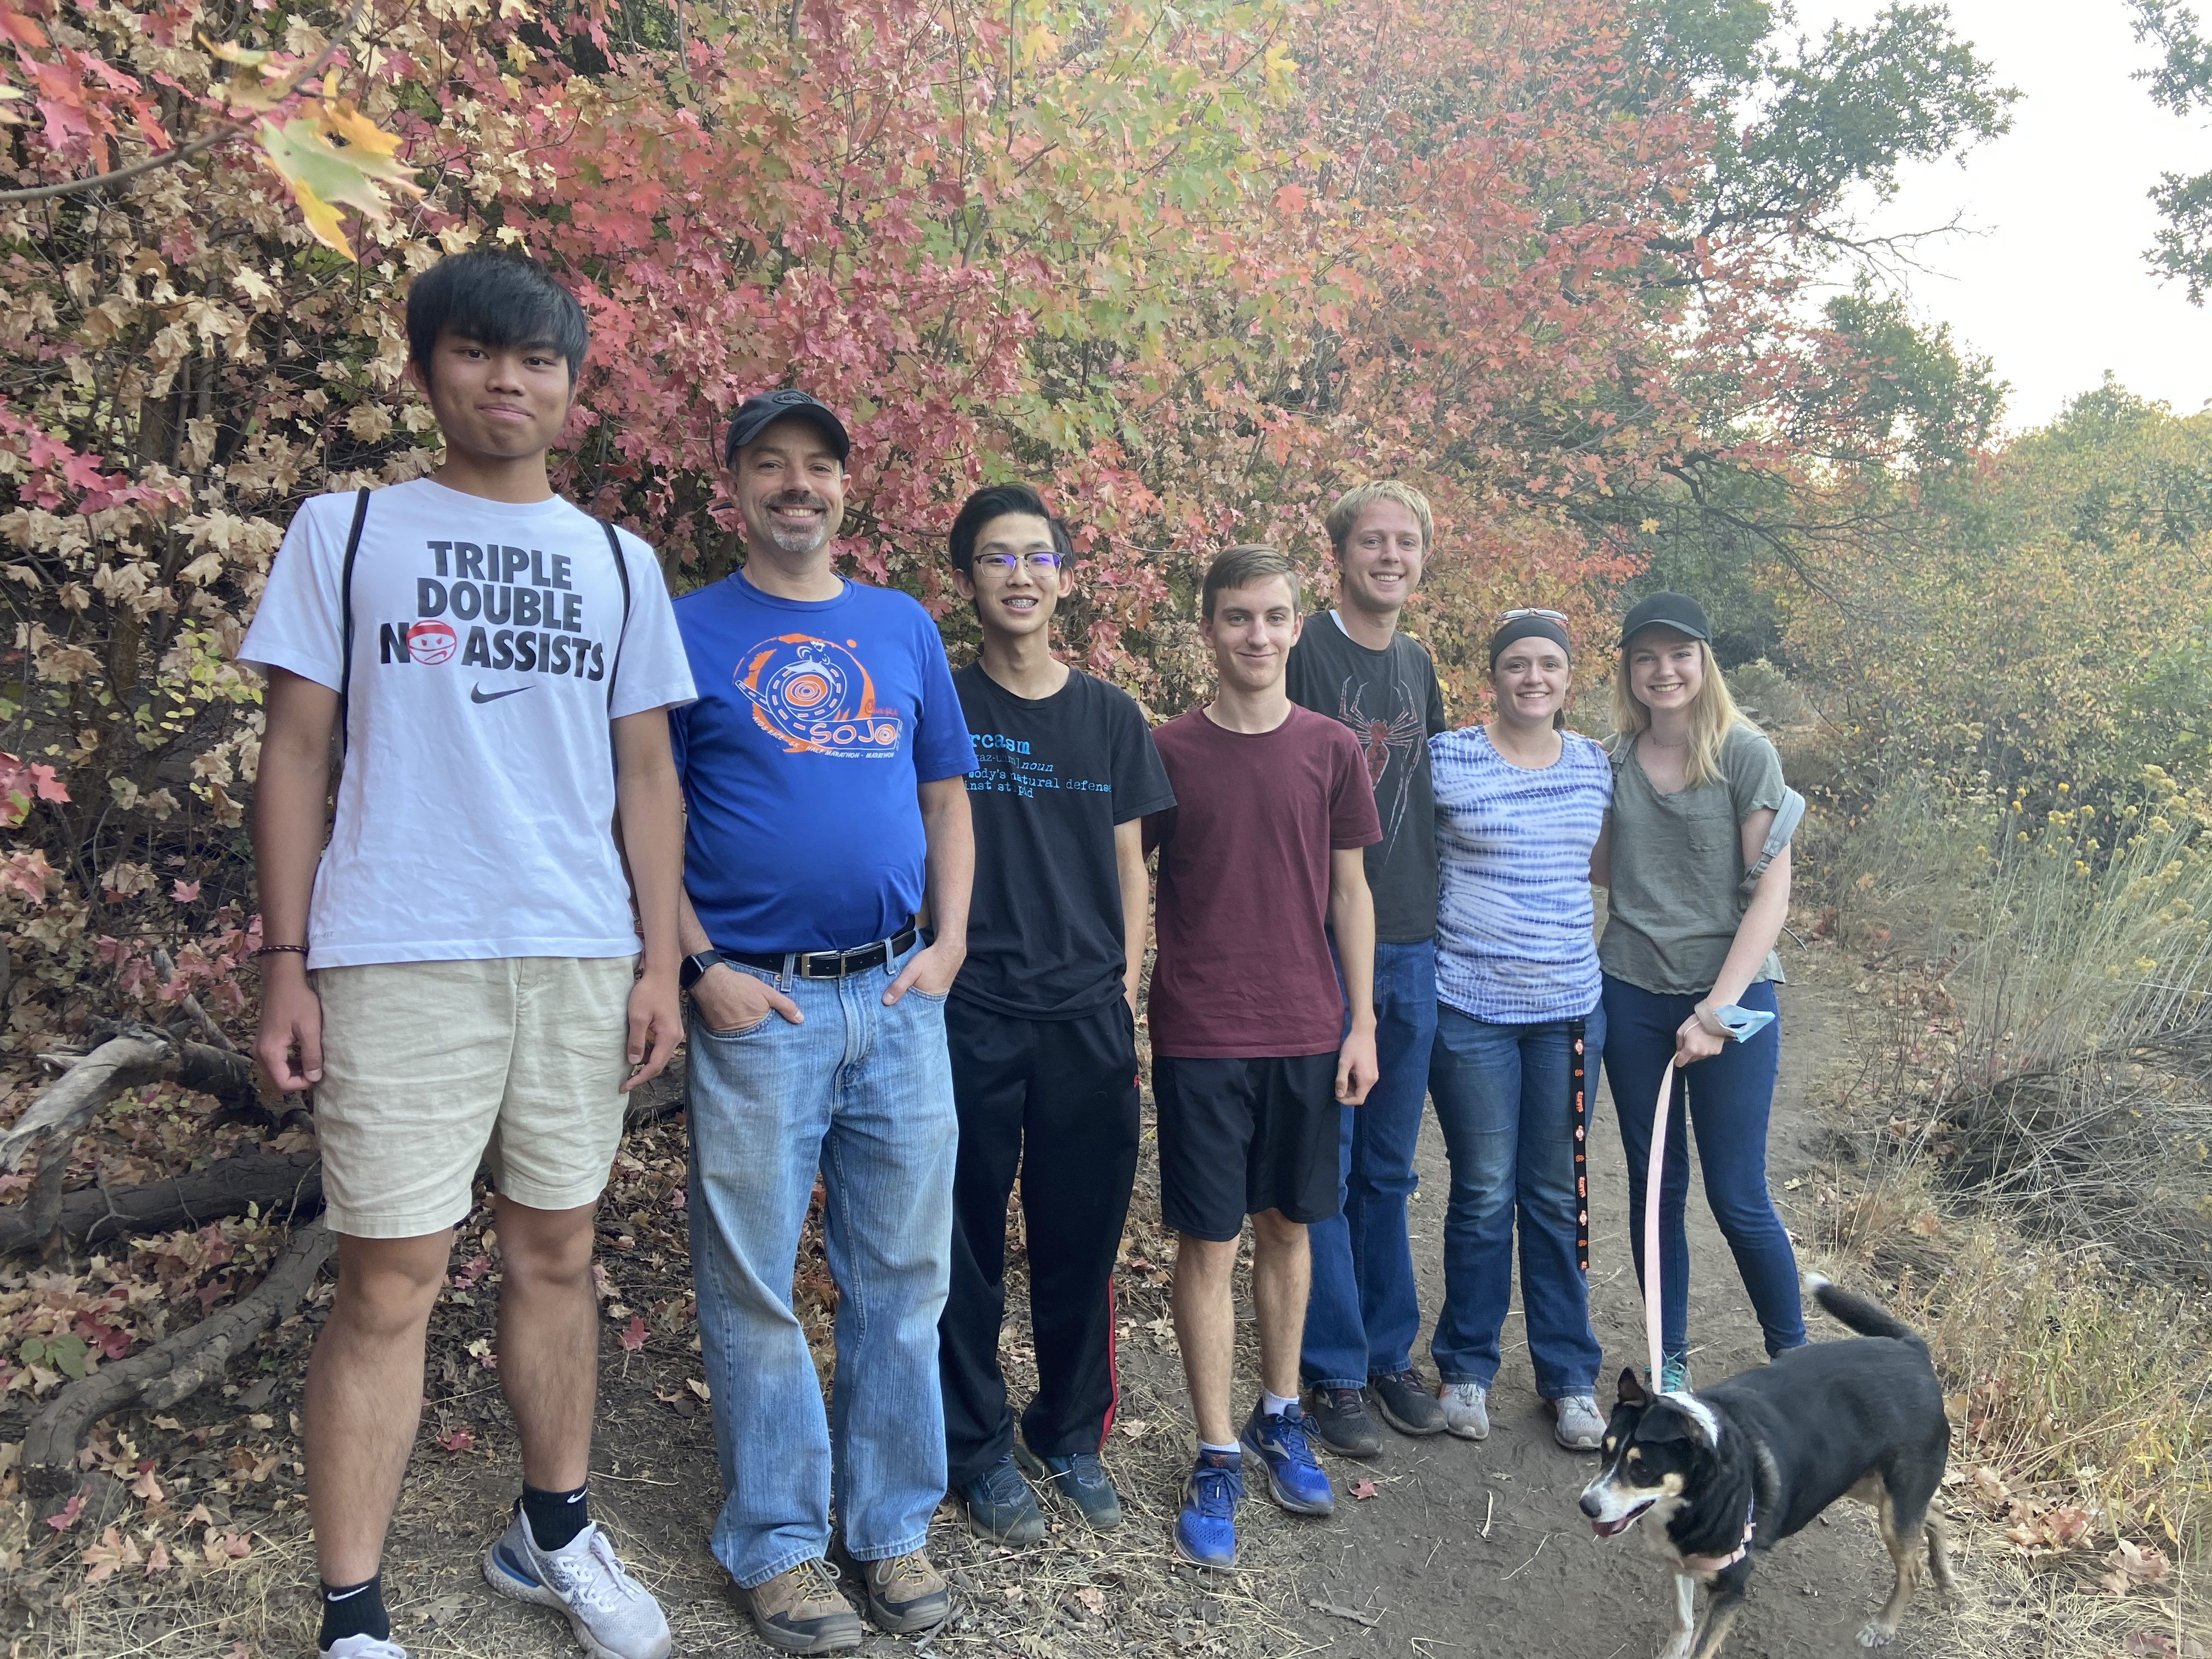 Chung Ming from Hong Kong (left) and Rafael from Spain (red shirt) with their hosts the McPherson Family on a nice Fall hike.